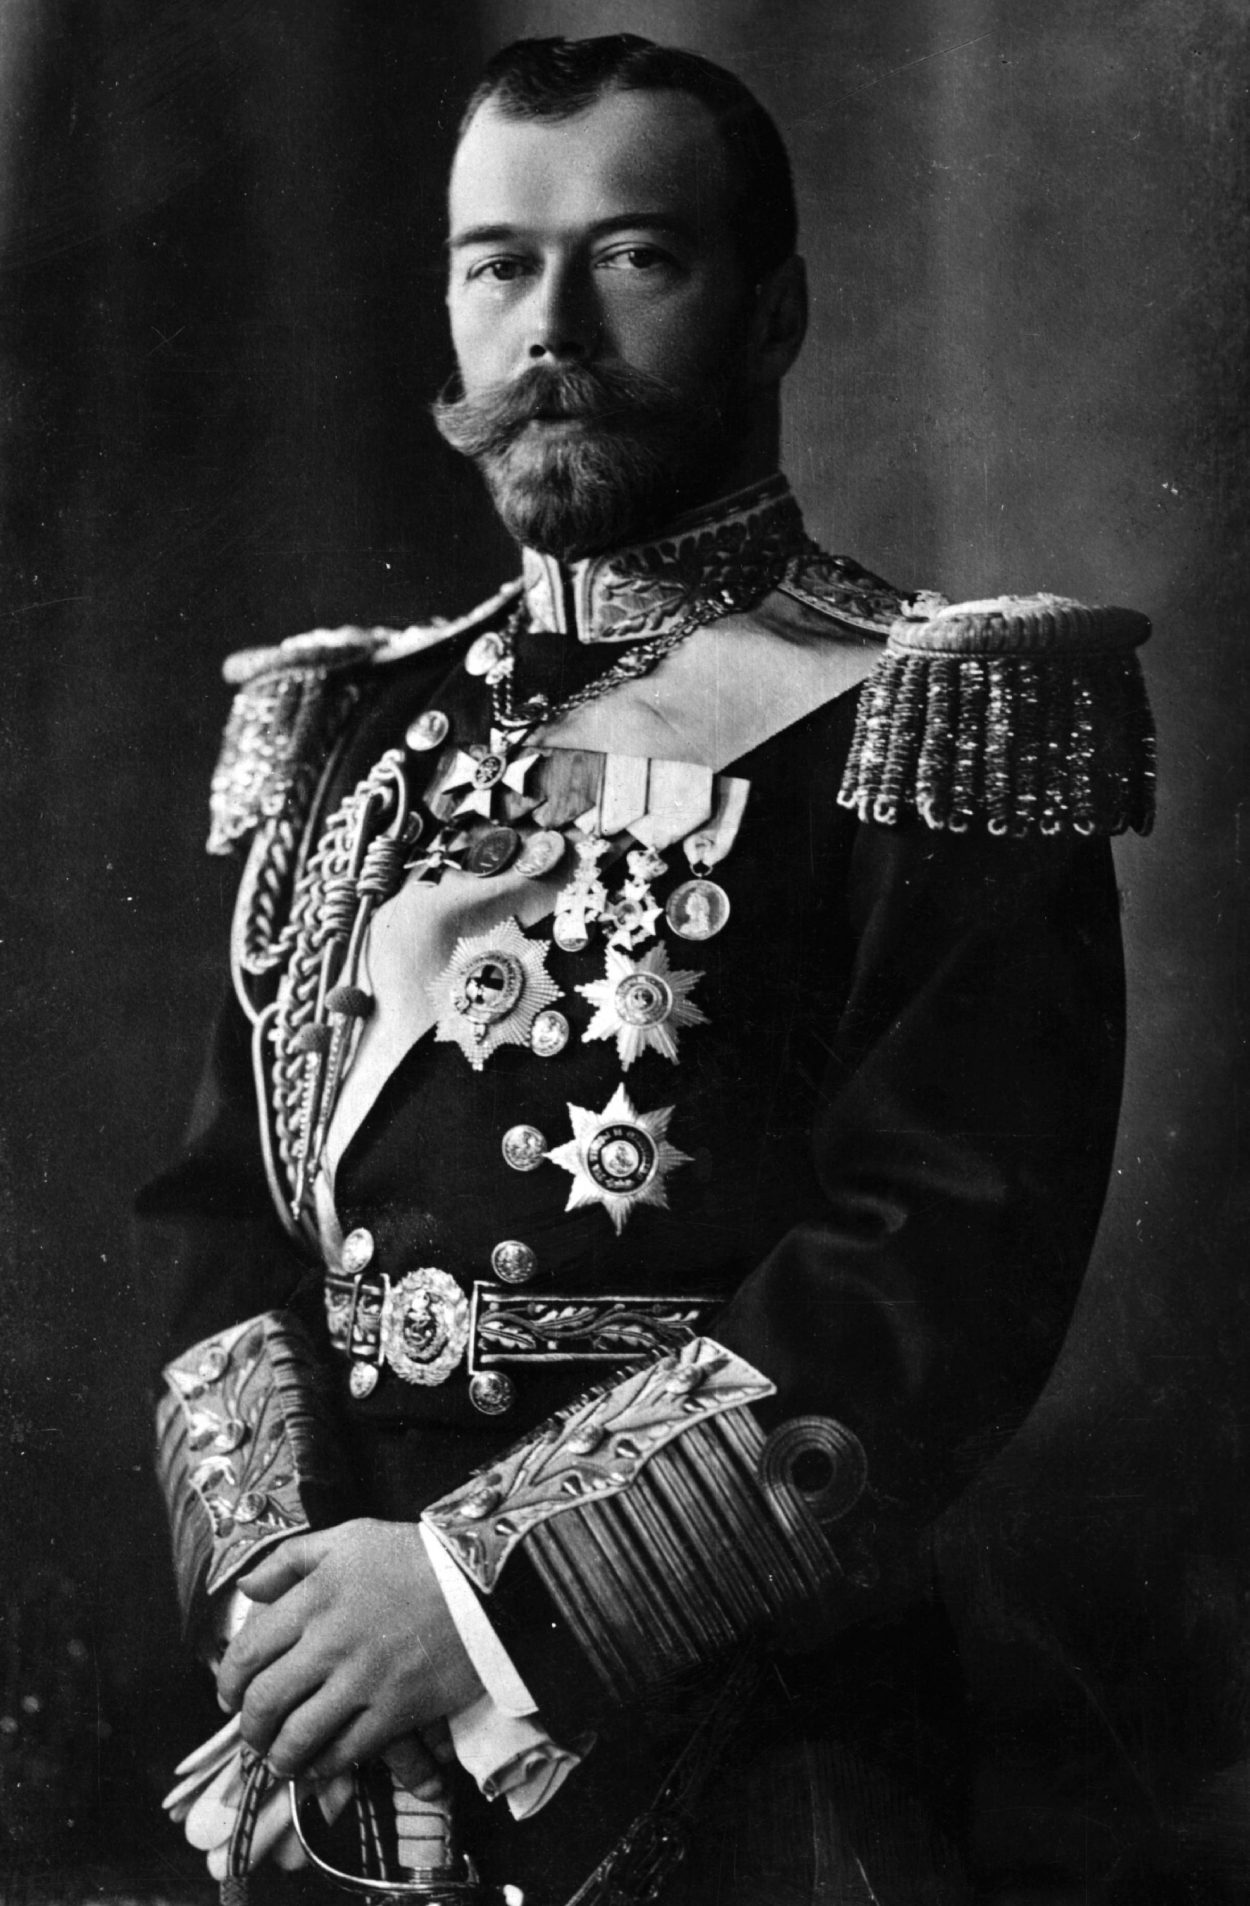 the role of tzar nicholas in the downfall of the russian empire Start studying ch 27-wwi learn vocabulary russian agrarian socialist who led russia after the fall of nicholas ii, the last czar.